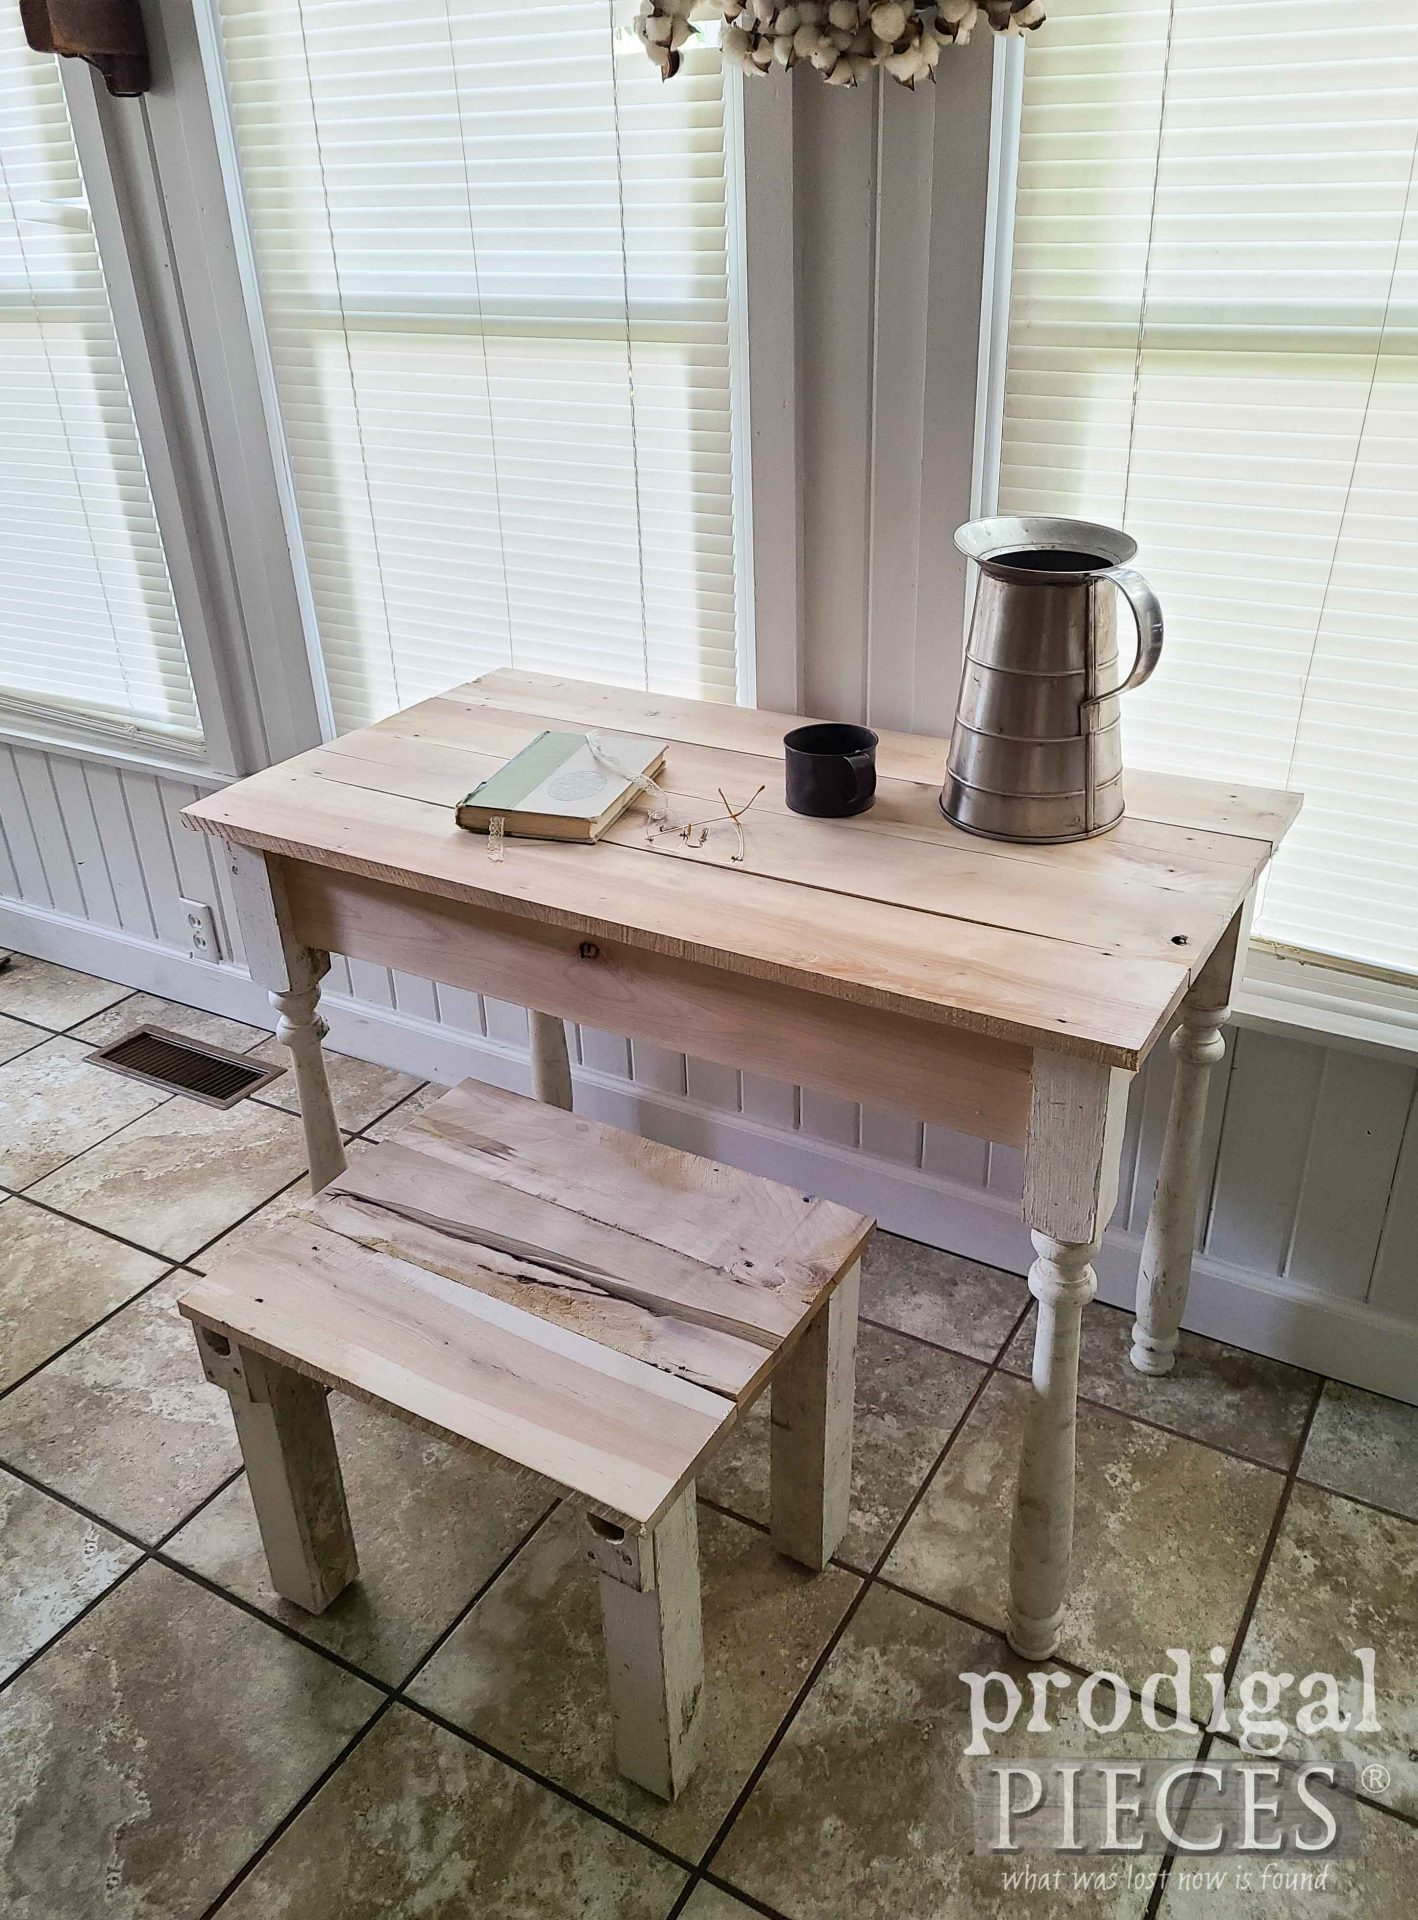 Handmade Farmhouse Desk Set from Reclaimed Wood by Larissa of Prodigal Pieces | prodigalpieces.com #prodigalpieces #farmhouse #reclaimed #hom #homedecor #diy